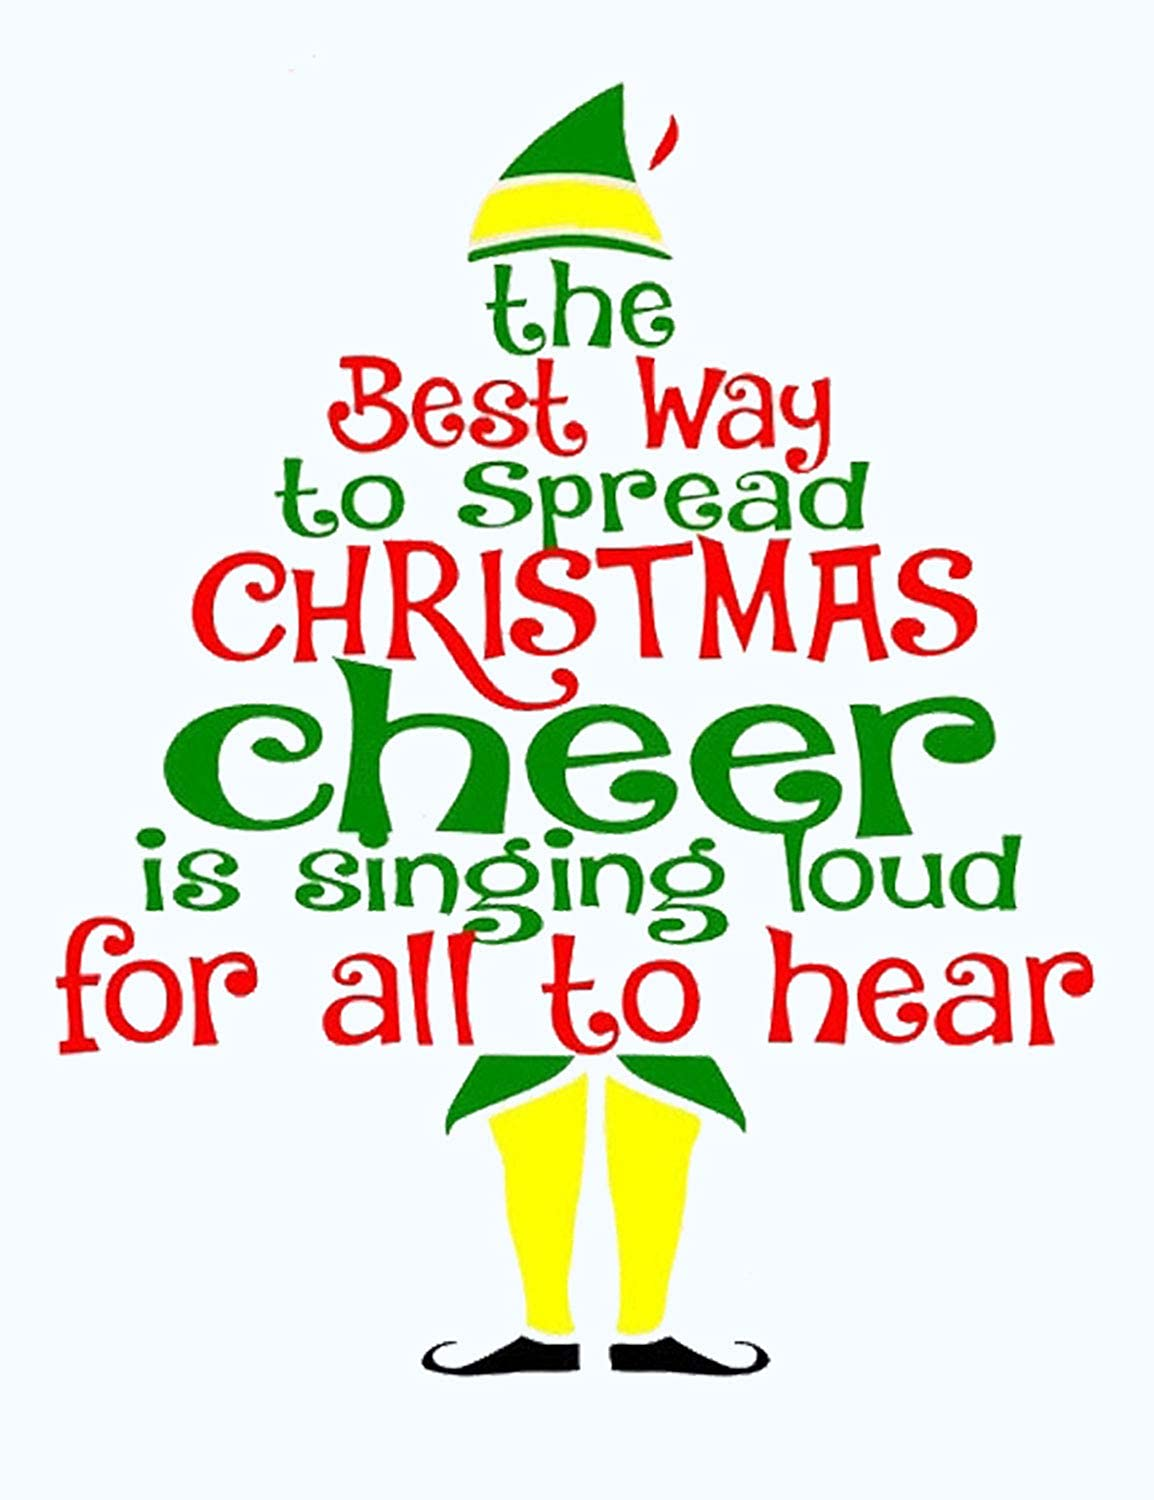 a4daa239 Amazon.com: Nlife Women The Best Way to Spread Christmas Cheer is Singing  Loud for All to Hear T-Shirt: Clothing